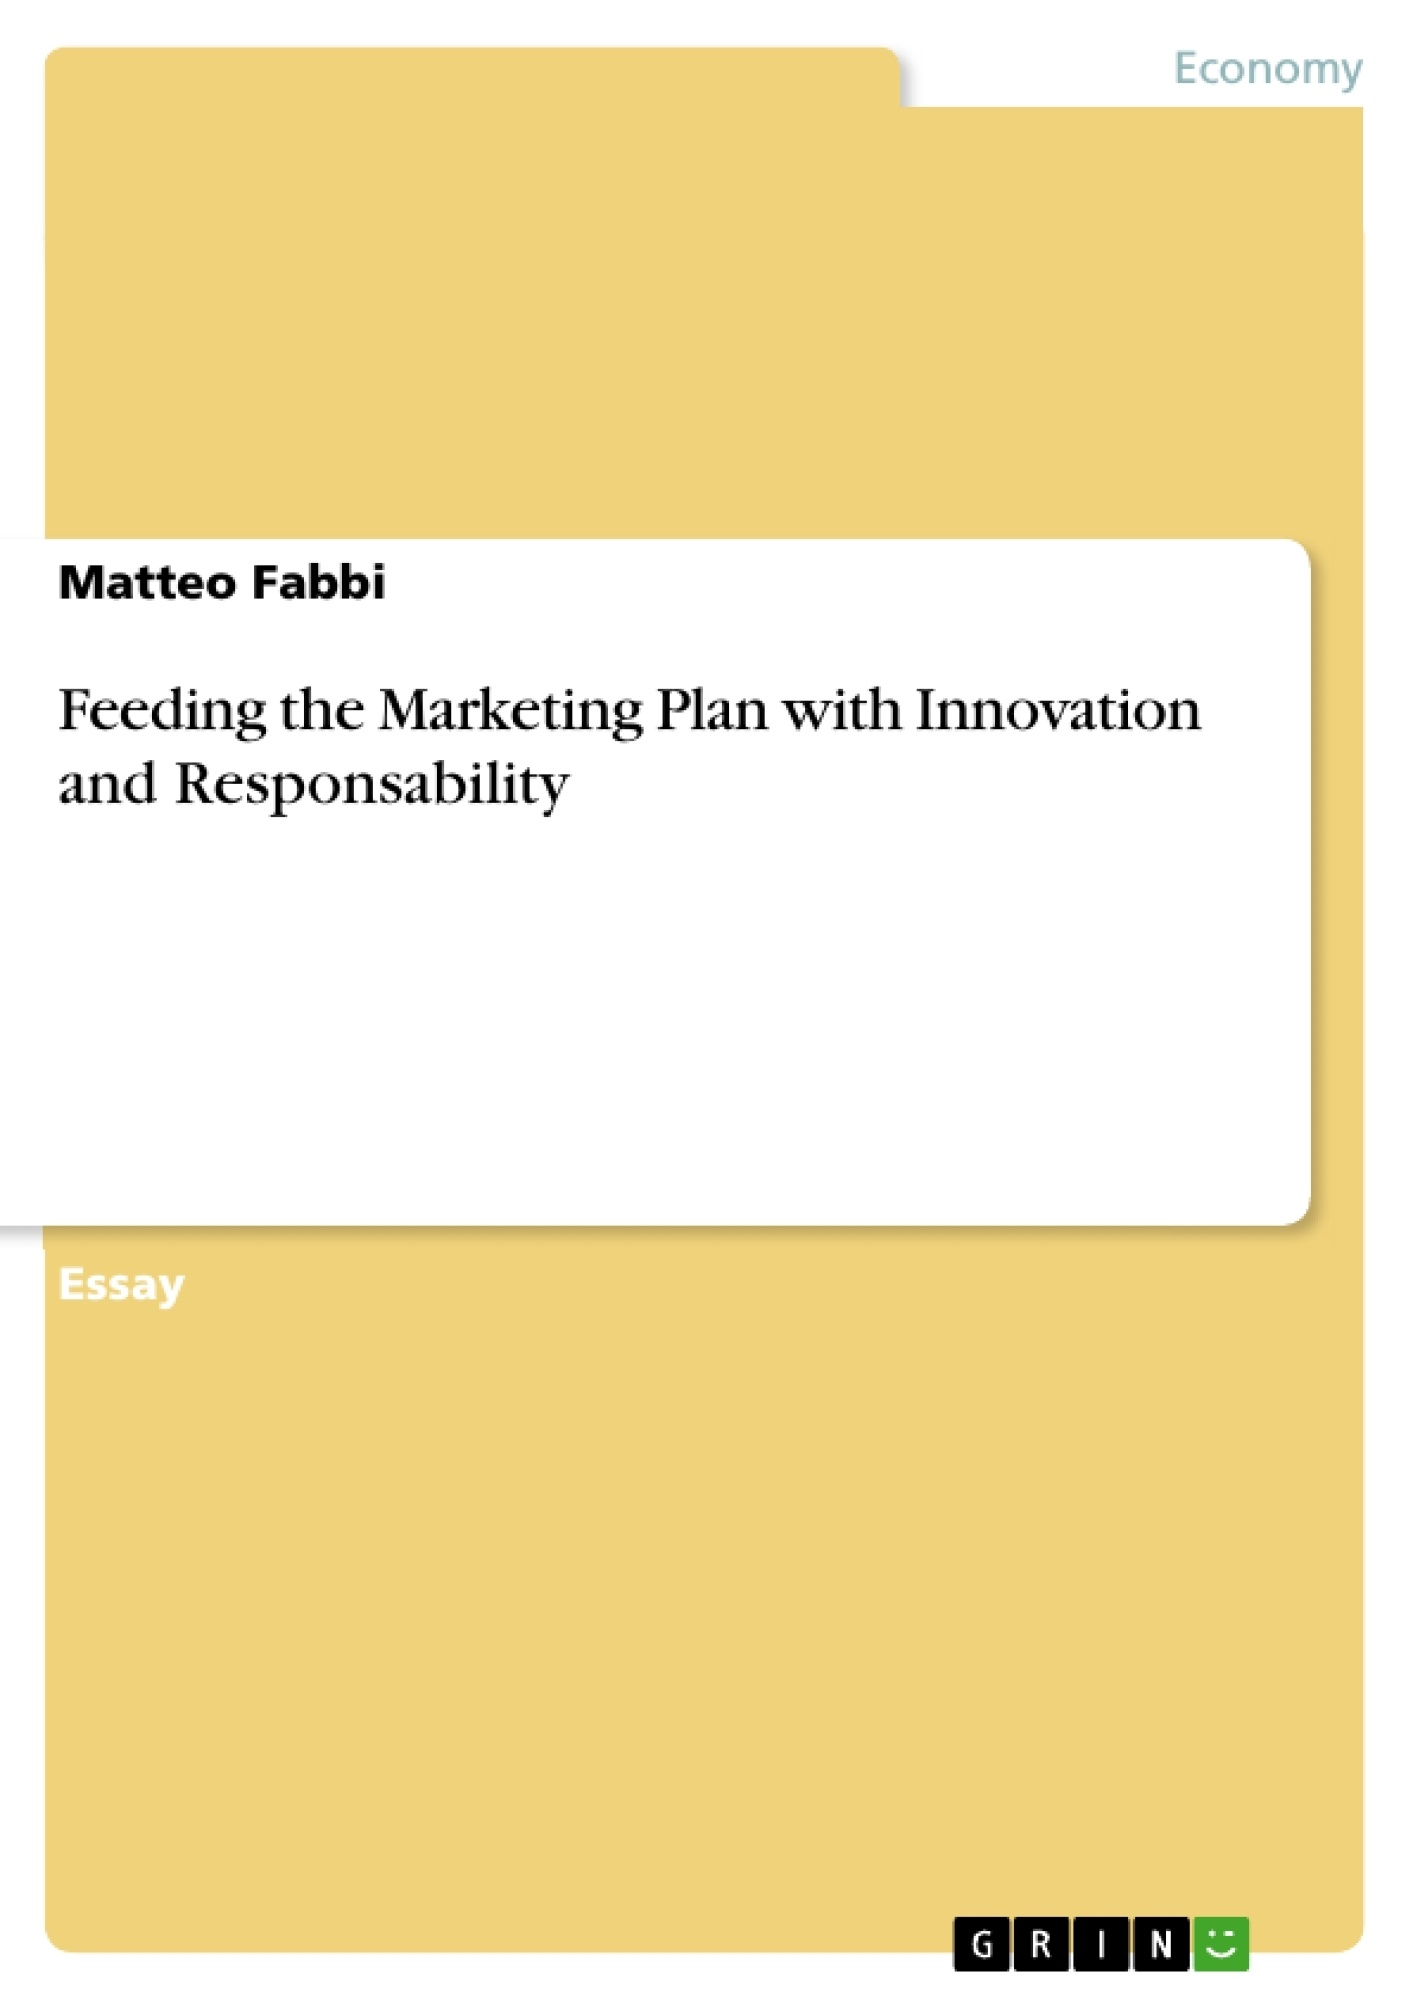 Title: Feeding the Marketing Plan with Innovation and Responsability